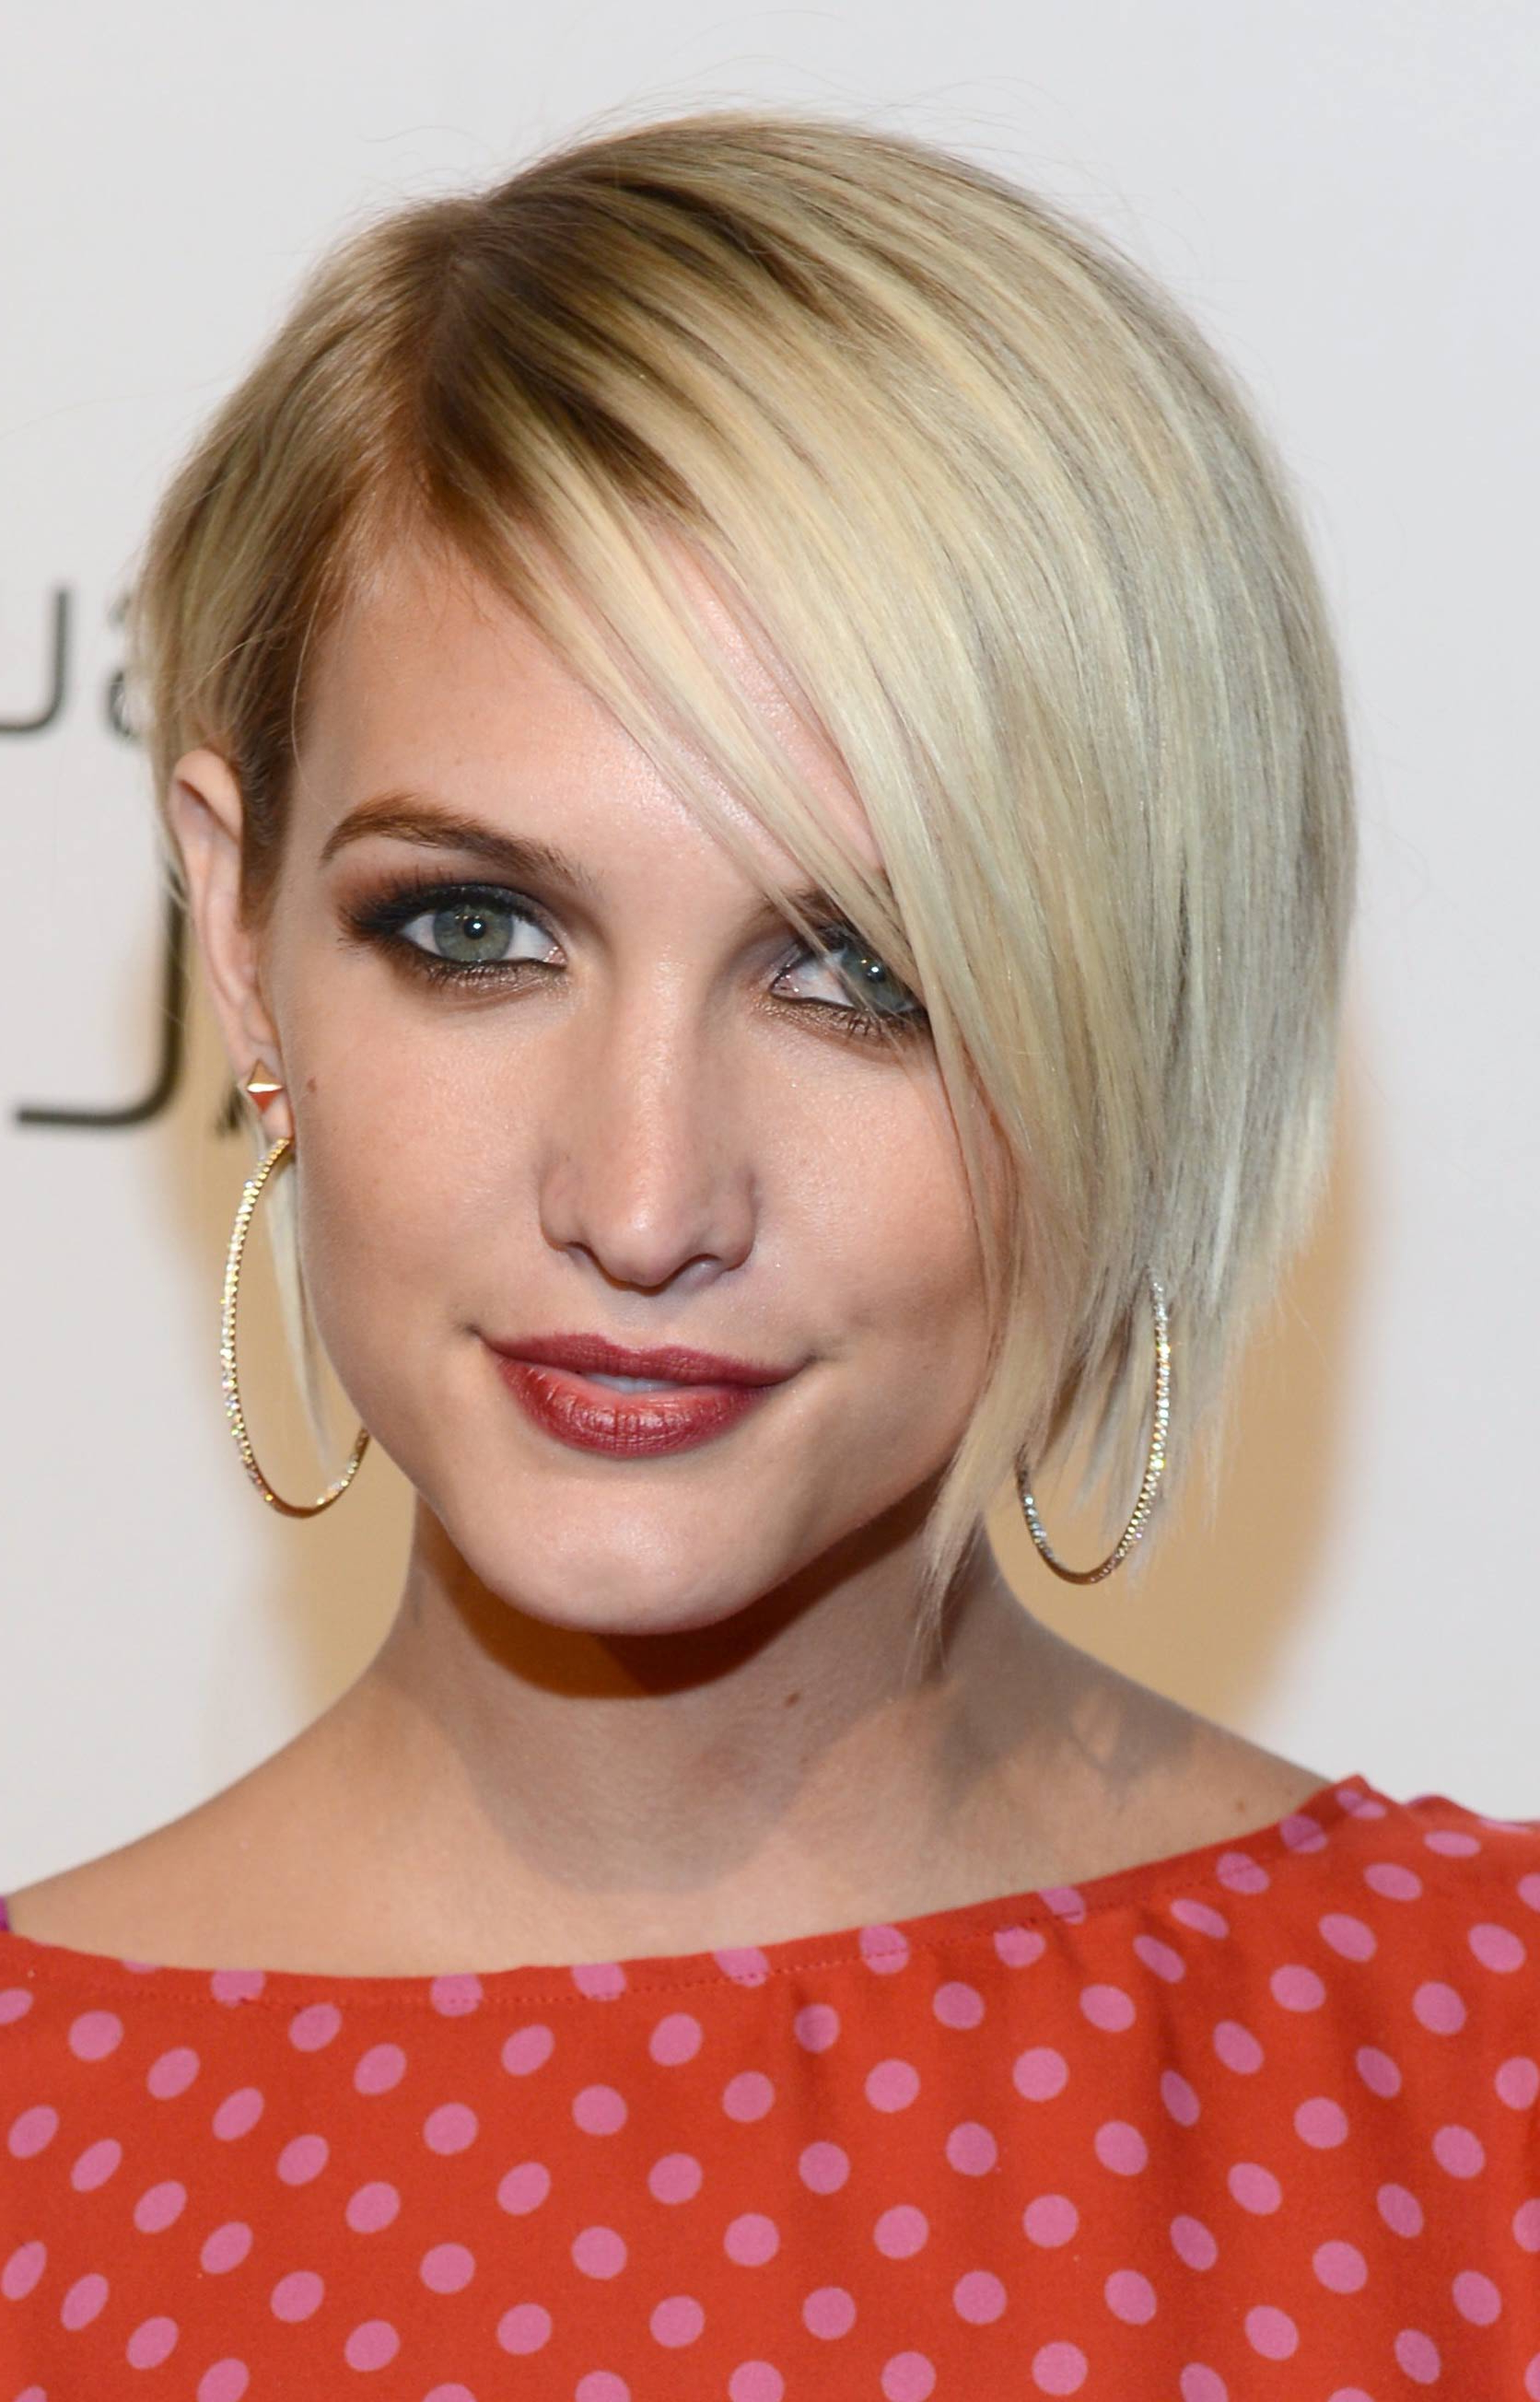 Asymmetric Hairstyles Short Hair – Hairstyle For Women & Man With Regard To Asymmetric Short Haircuts (View 11 of 25)